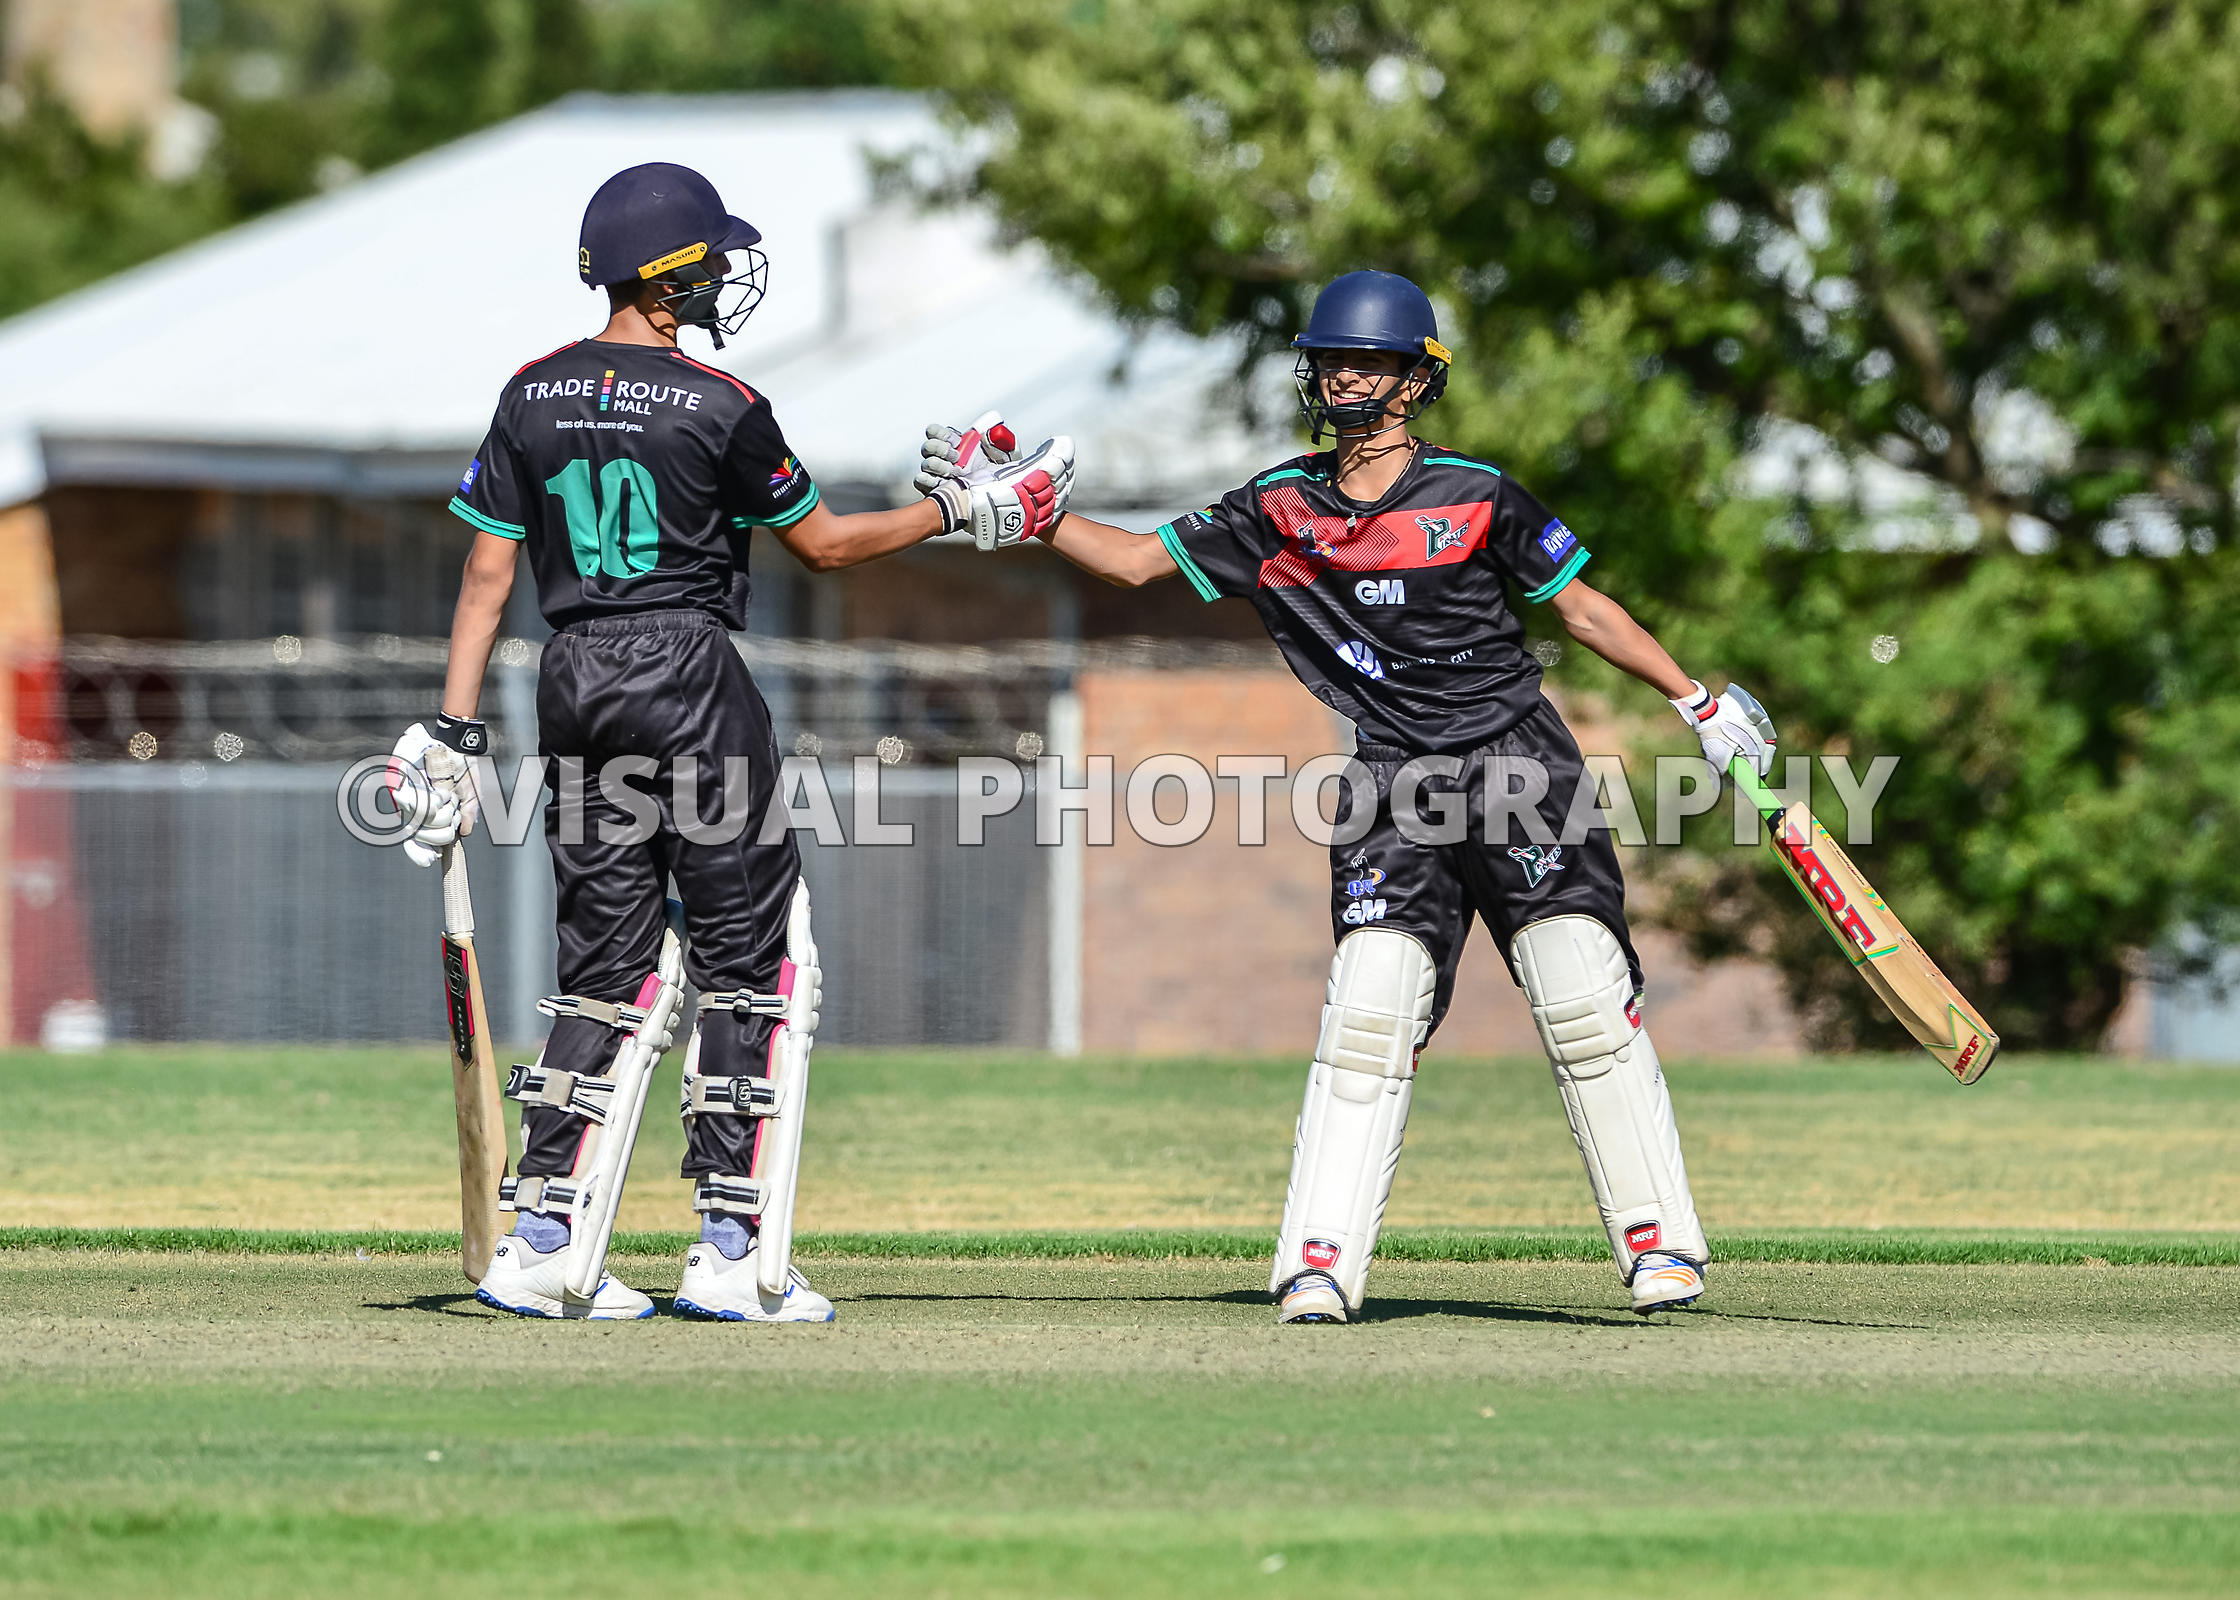 Pirates - Vs - Dragons - Durbanville Cricket Club .